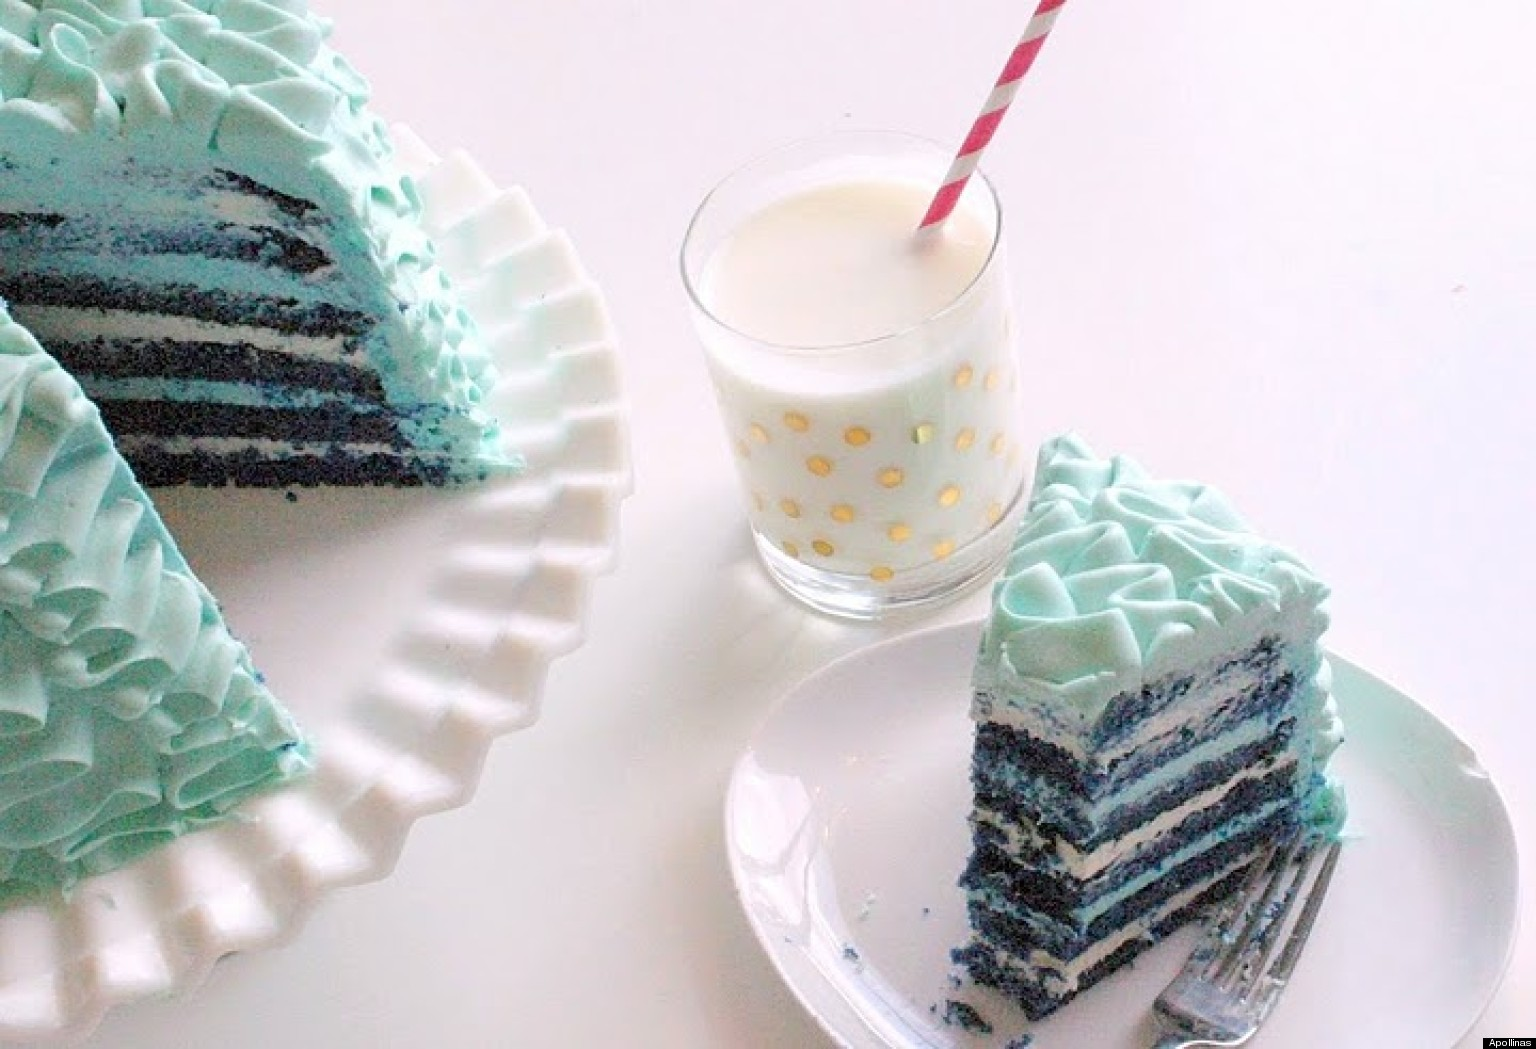 Velvet Cake Recipes In Every Single Color (PHOTOS) | HuffPost